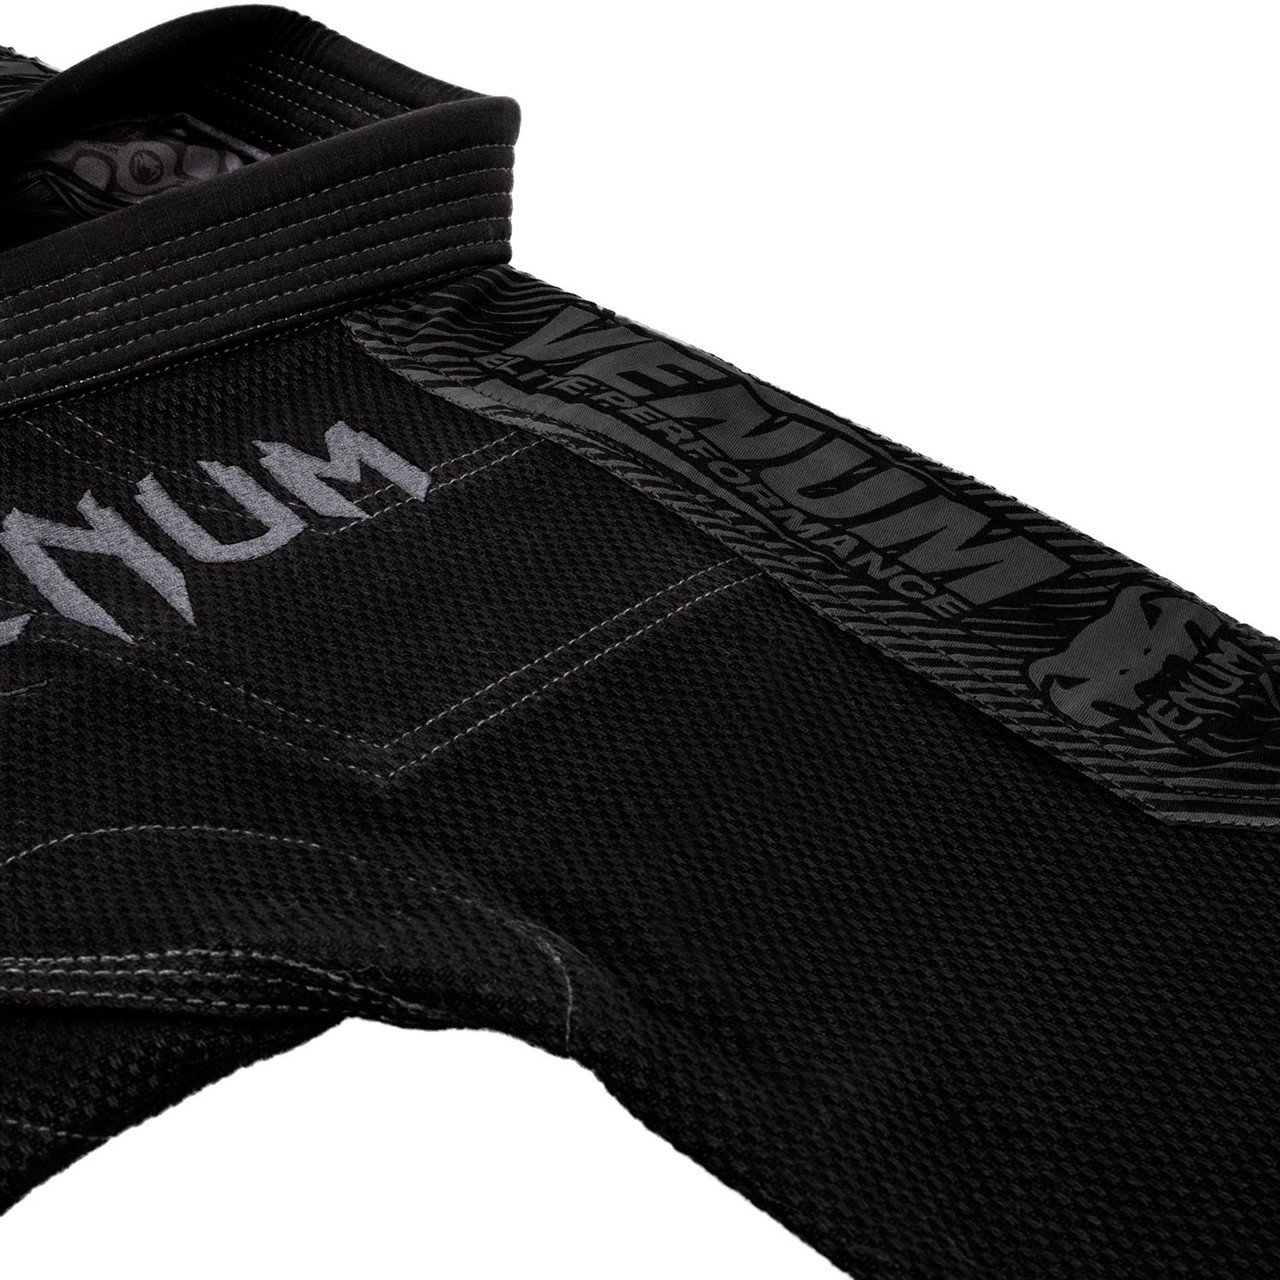 Top and arm of the Venum Elite BJJ GI in Black on black  is now available at www.thejiujitsushop.com  Enjoy Free Shipping from The Jiu Jitsu Shop today!